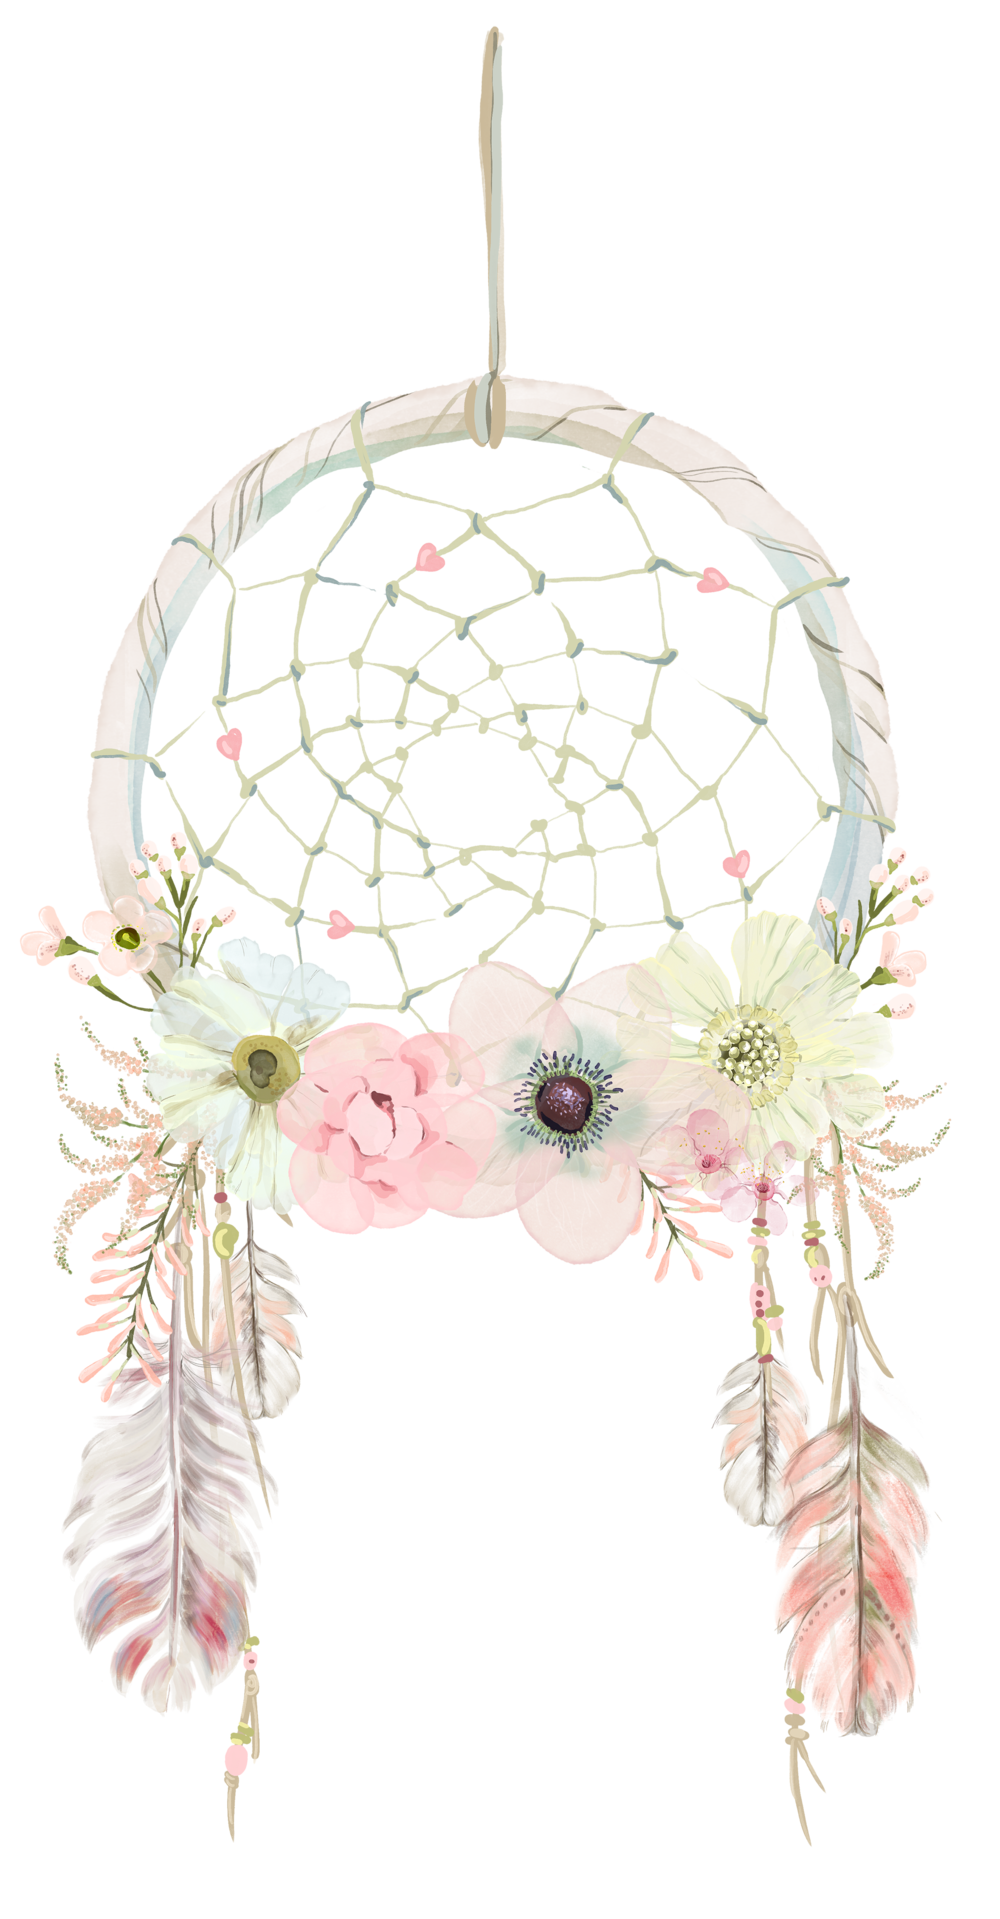 dreamcatcher transparent whimsical